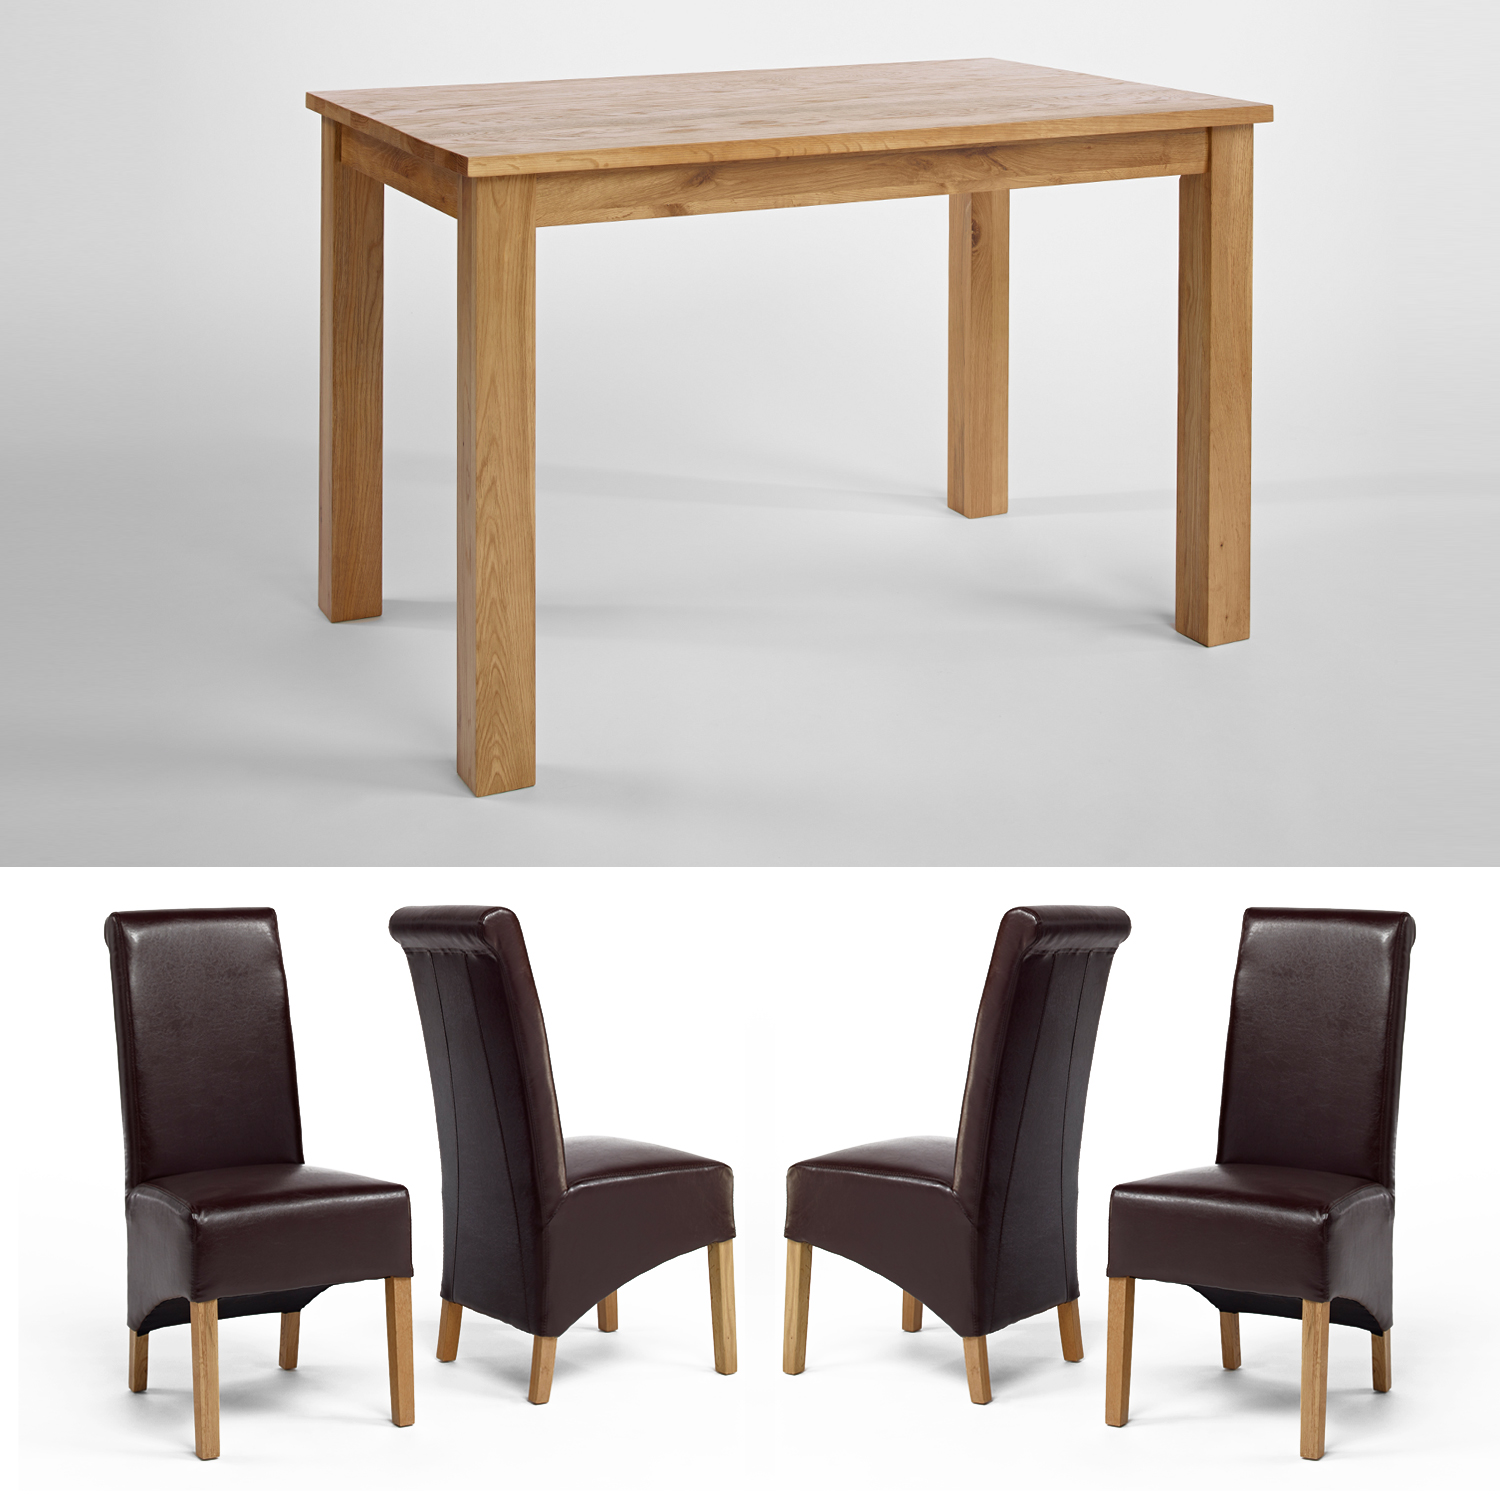 Lansdown Oak Dining Table 1200mm + Set of 4 Dining Chairs (multiple styles) (Lansdown Oak Dining Table 1200mm + 4 Sherwood Oak Cream Rollback Chairs)